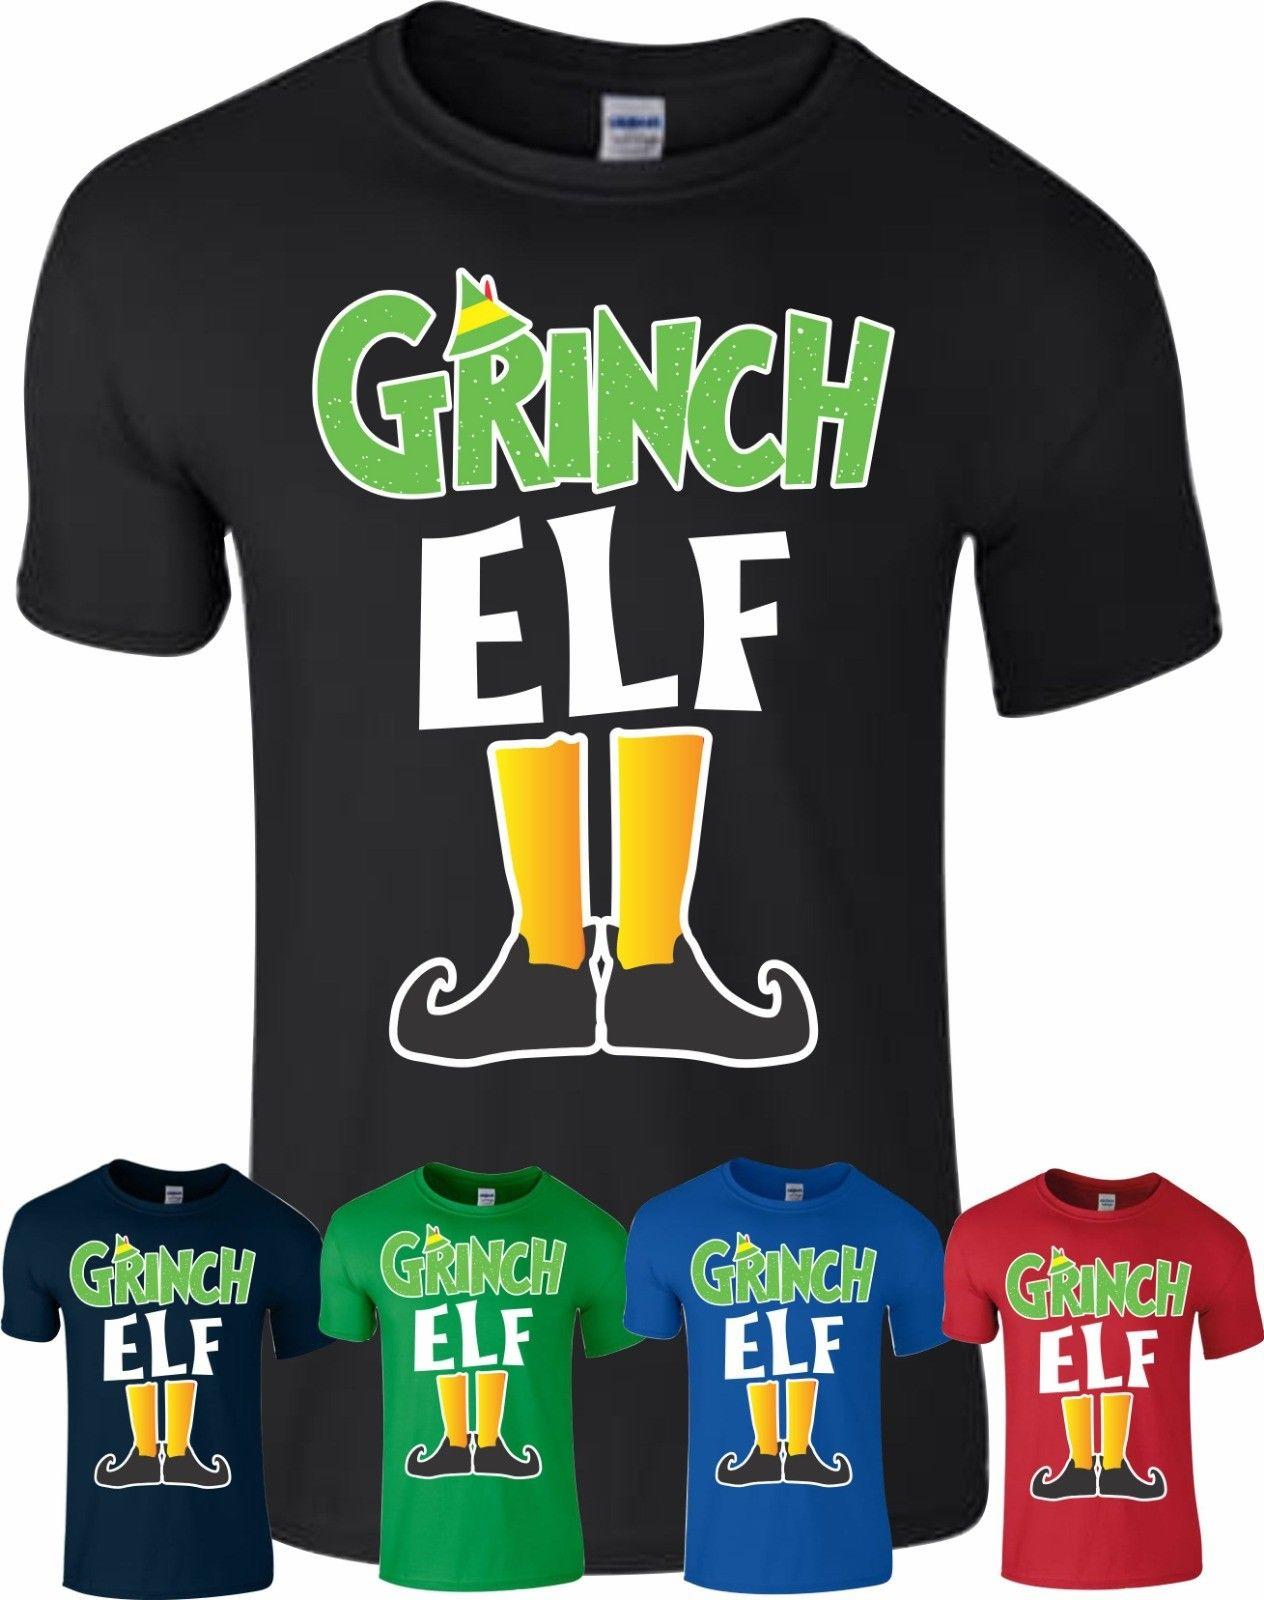 ee45ae07 Grinch Elf Christmas T Shirt Novelty Xmas Pyjama PJ'S Idea Kids Adult Unisex  Top Funny Unisex Casual Tee Gift Funny T Shirt Awesome T Shirts From ...